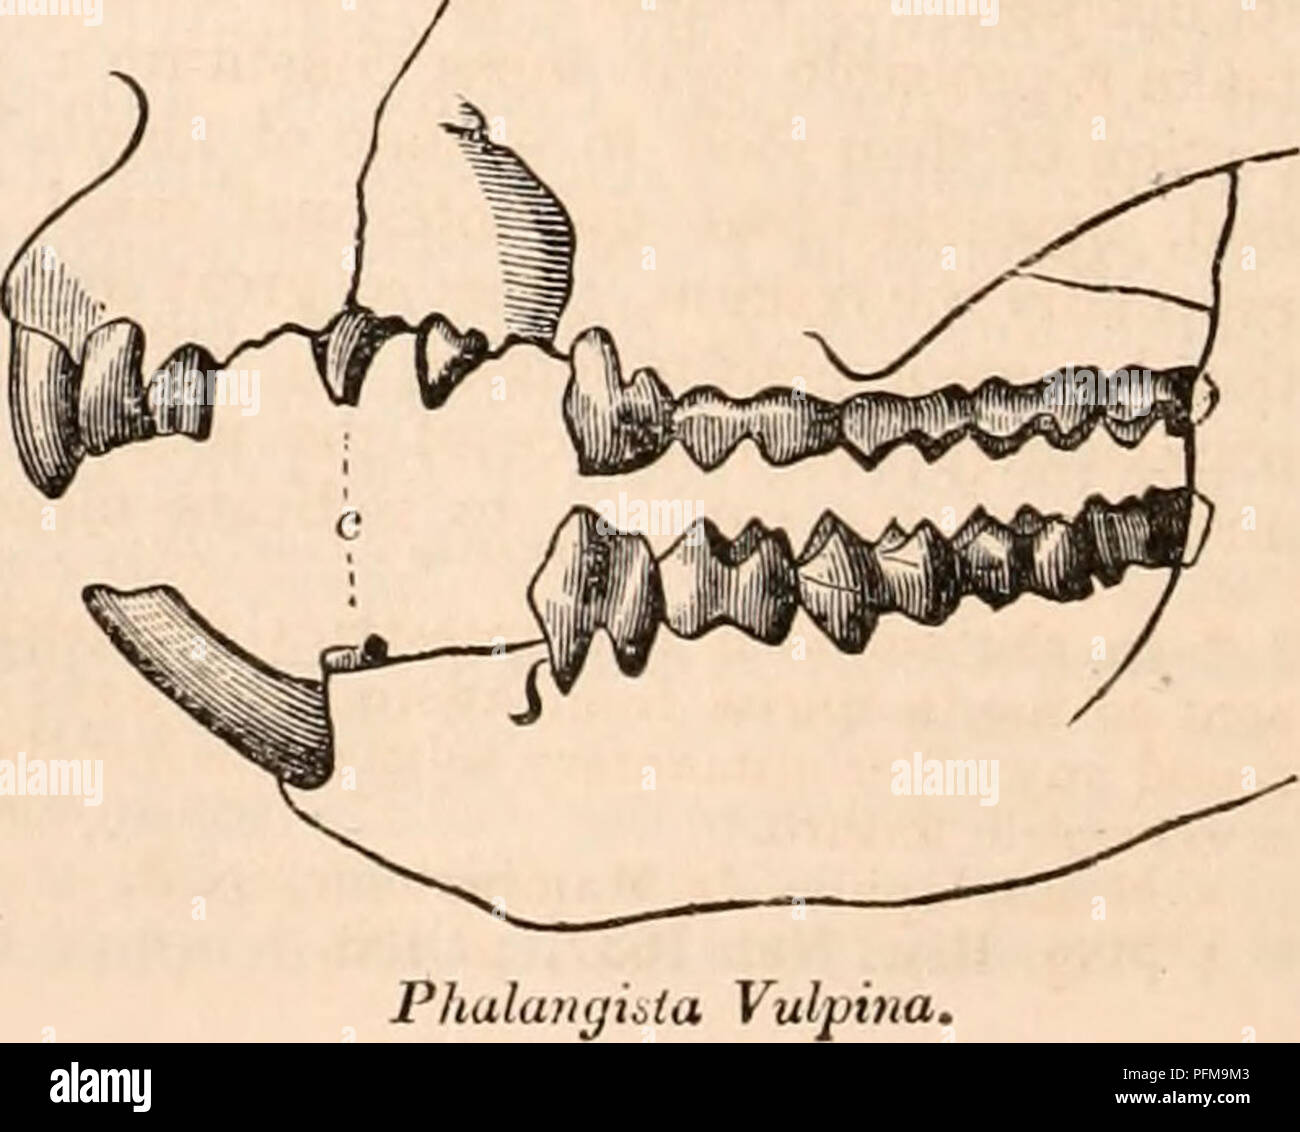 hight resolution of anatomy physiology zoology phalaiirjista cookii in the skull of a phalangixta cookii of which the dental formula is accurately given in jig